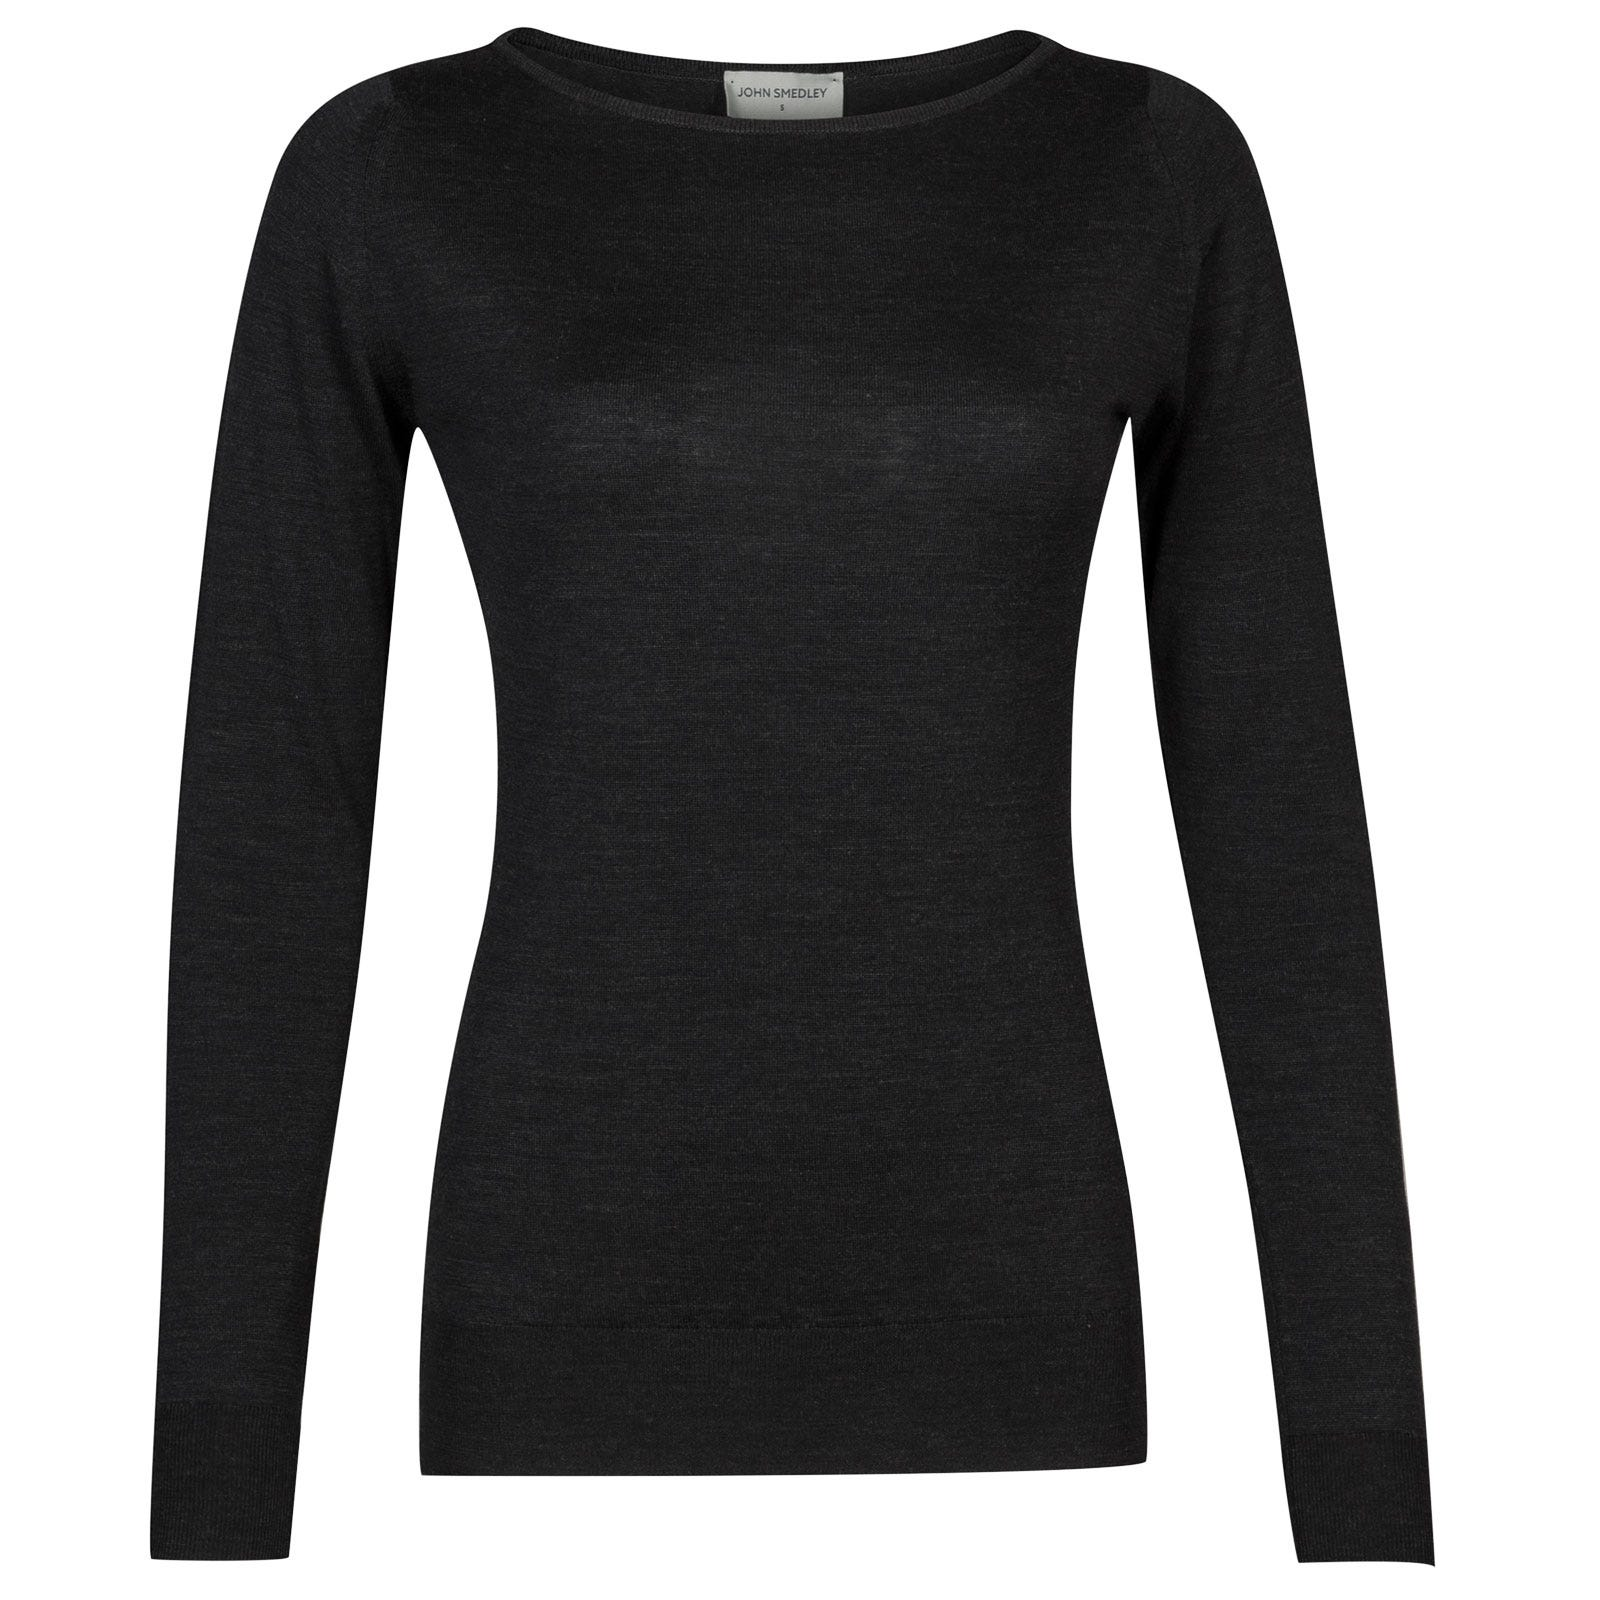 John Smedley susan Merino Wool Sweater in Hepburn Smoke-S